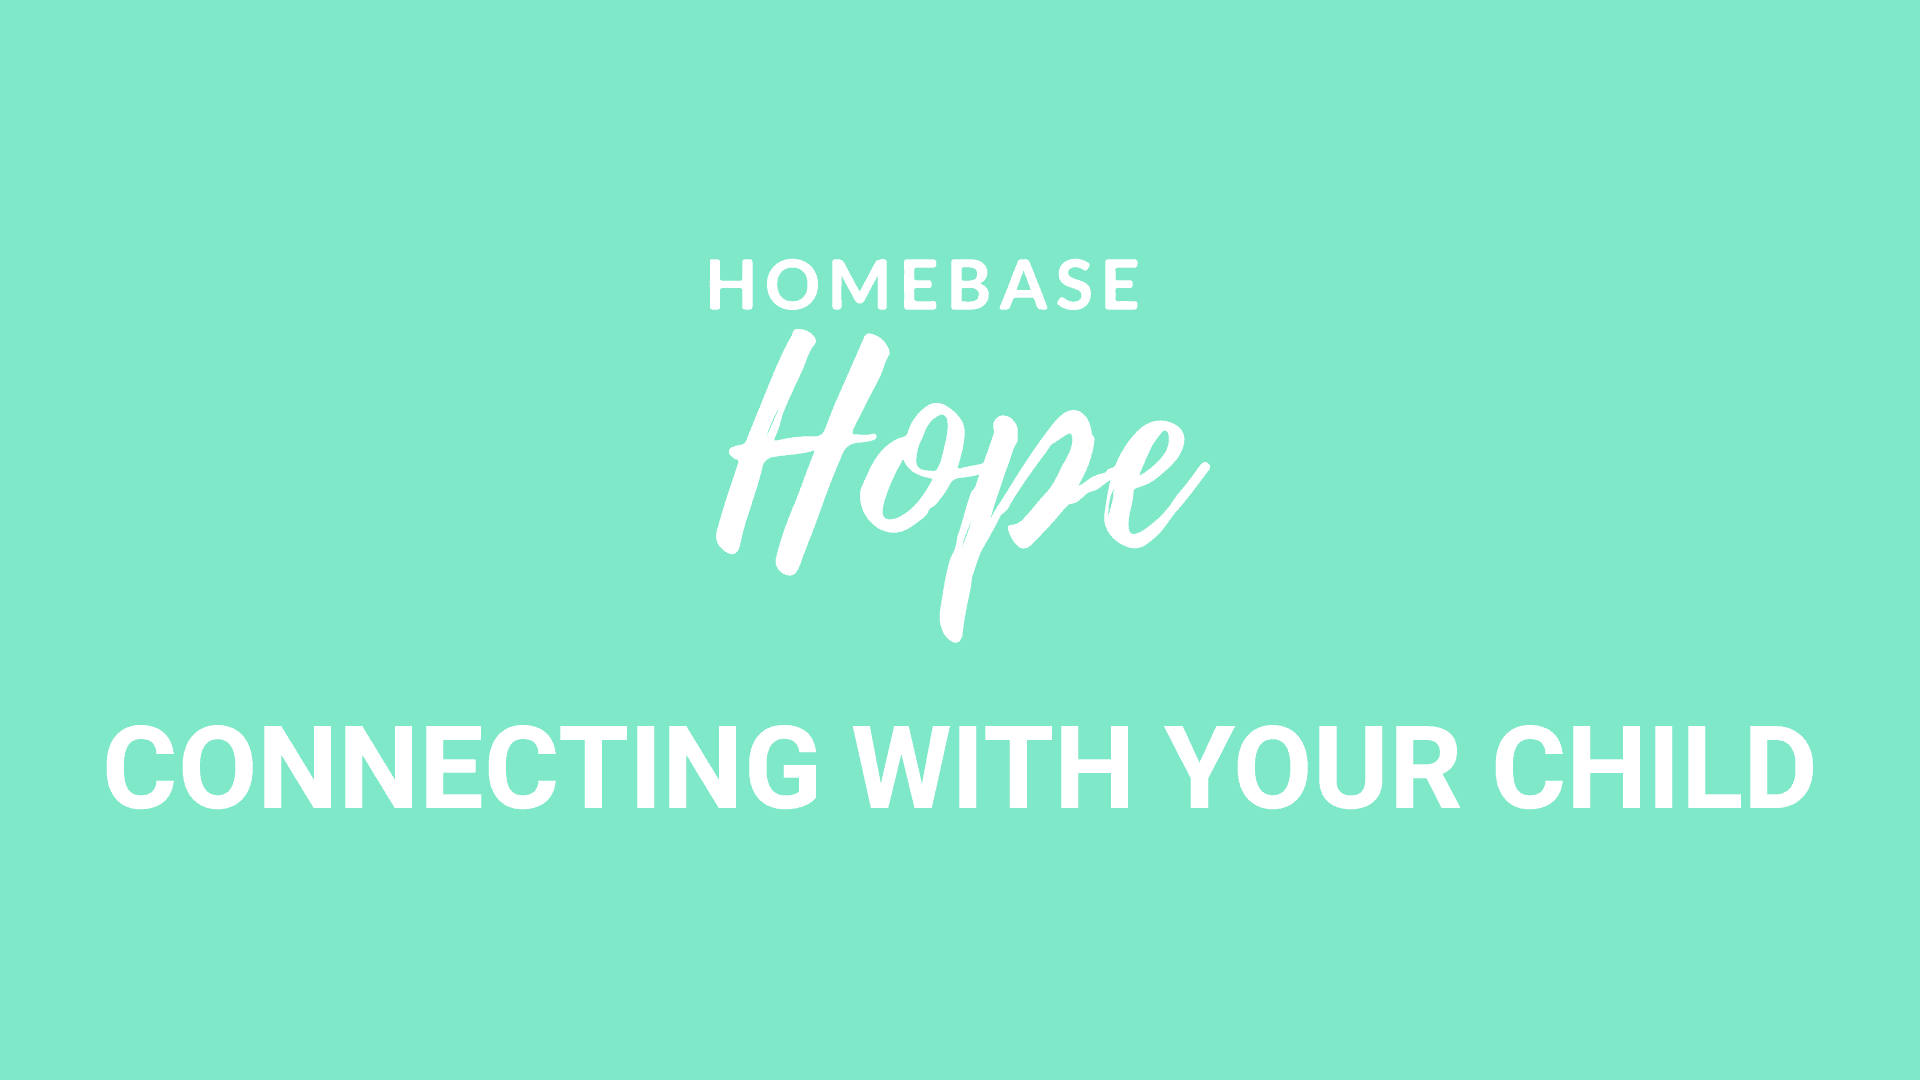 Homebase Hope Connecting with your Child Video Explainer